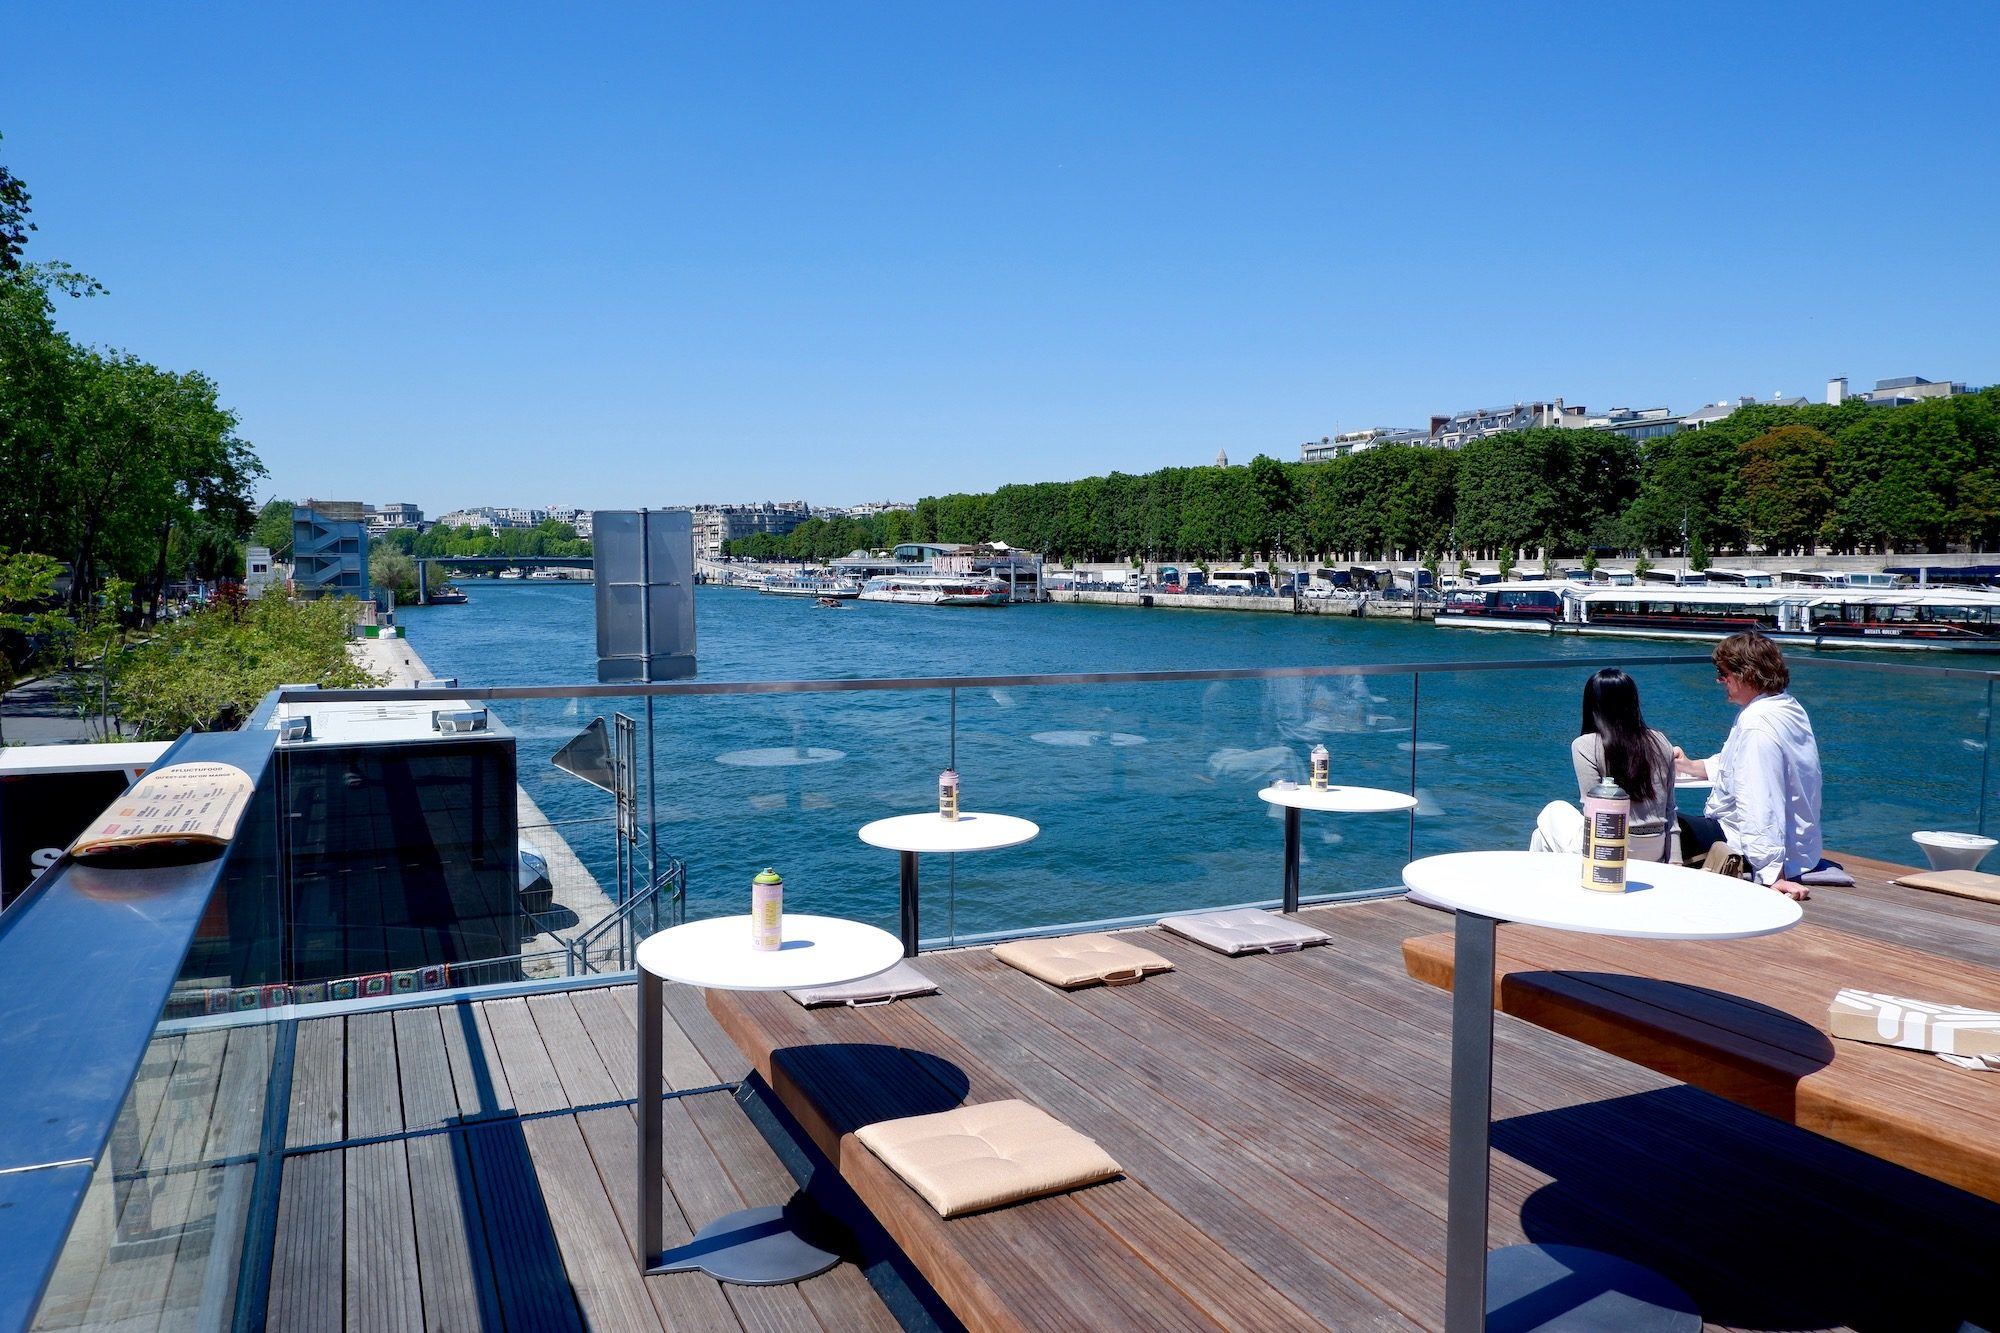 View of the River Seine in summer from the terrace of Fluctuart art center in Paris.